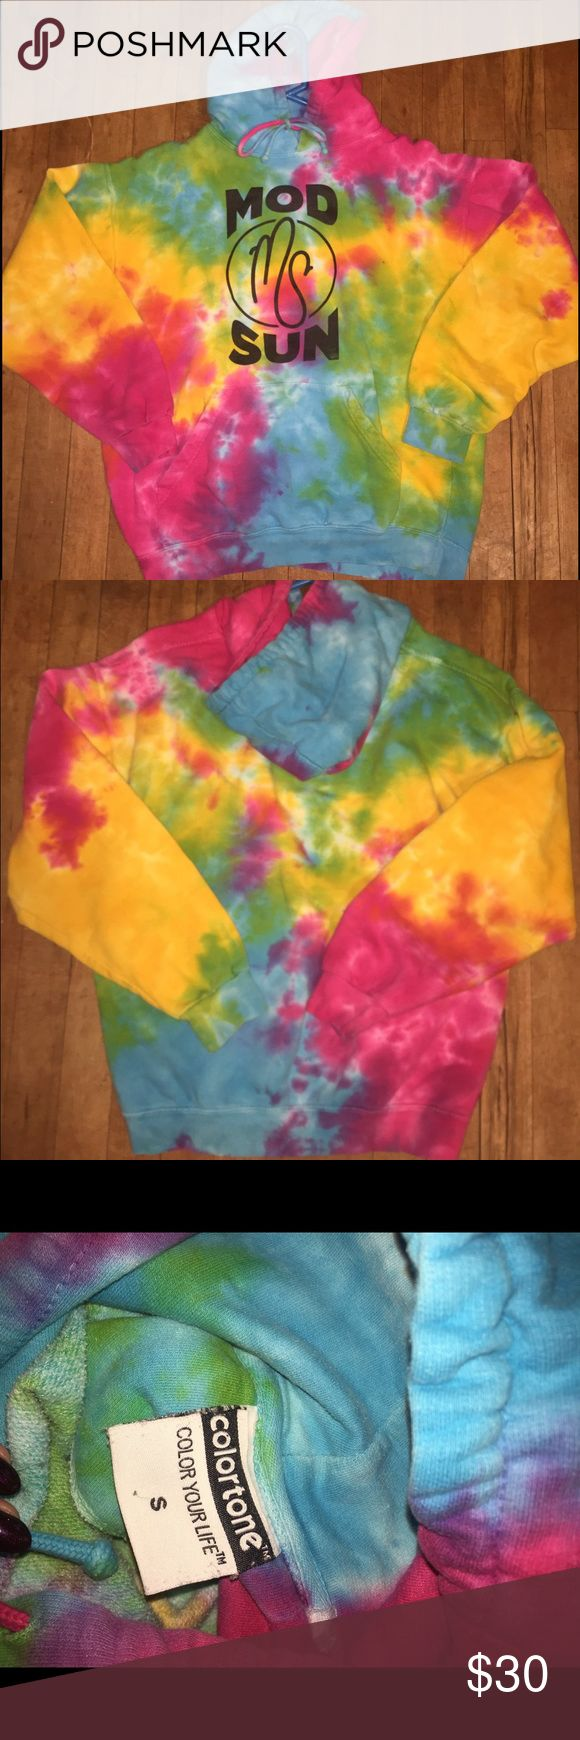 Modsun Tie Dye Hoodie Super awesome! Loved it just getting a bit snug. Bought from modsun's merch website. seen worn by many celebrities (Kendrick Lamar, Mac Miller , ect) still bright as new. Fits true to size Urban Outfitters Sweaters